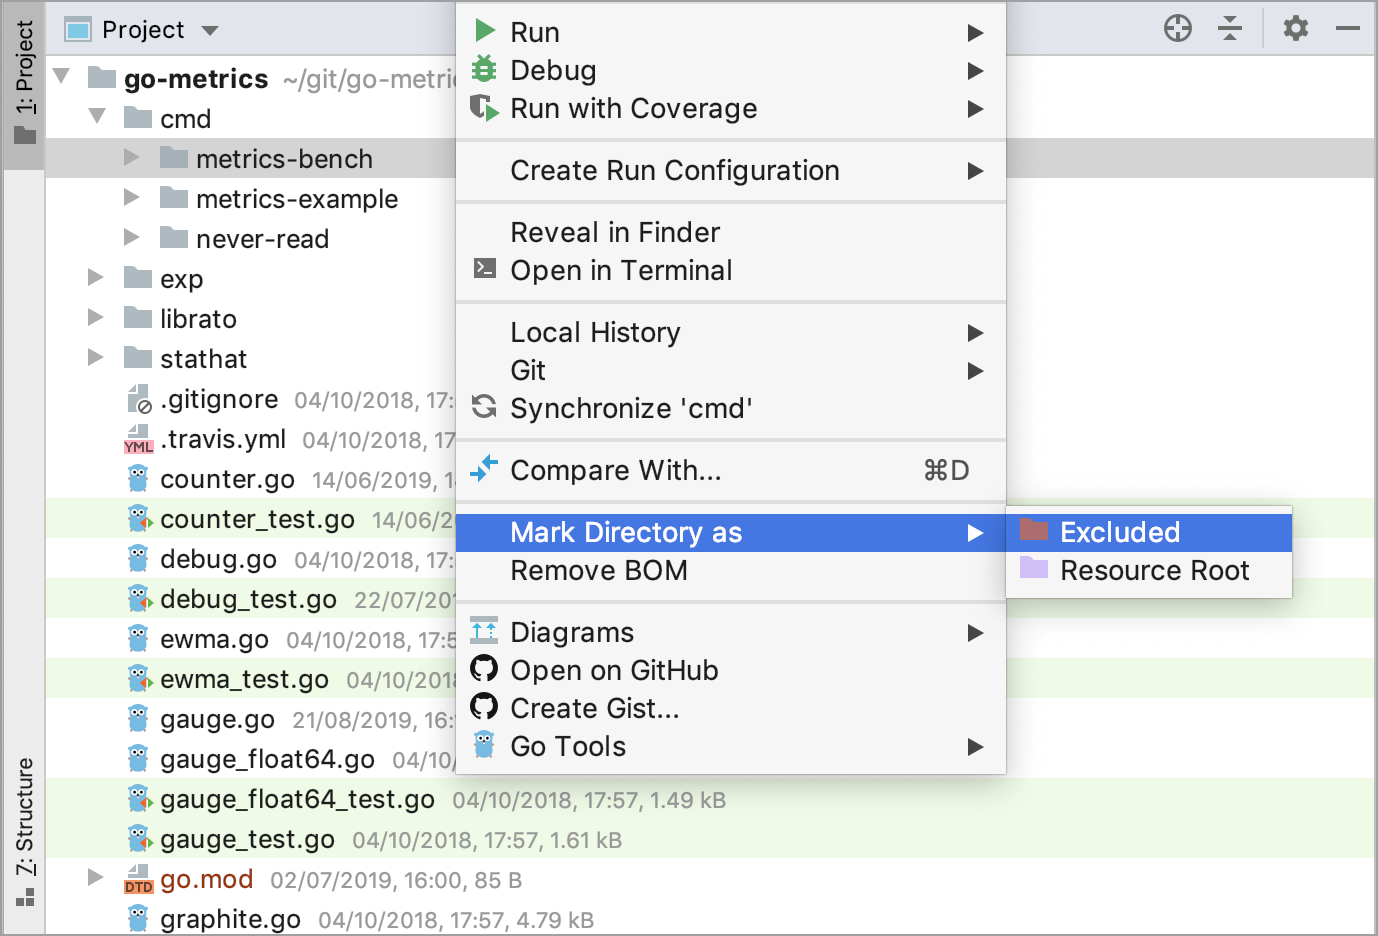 Mark directories in the Project tool window